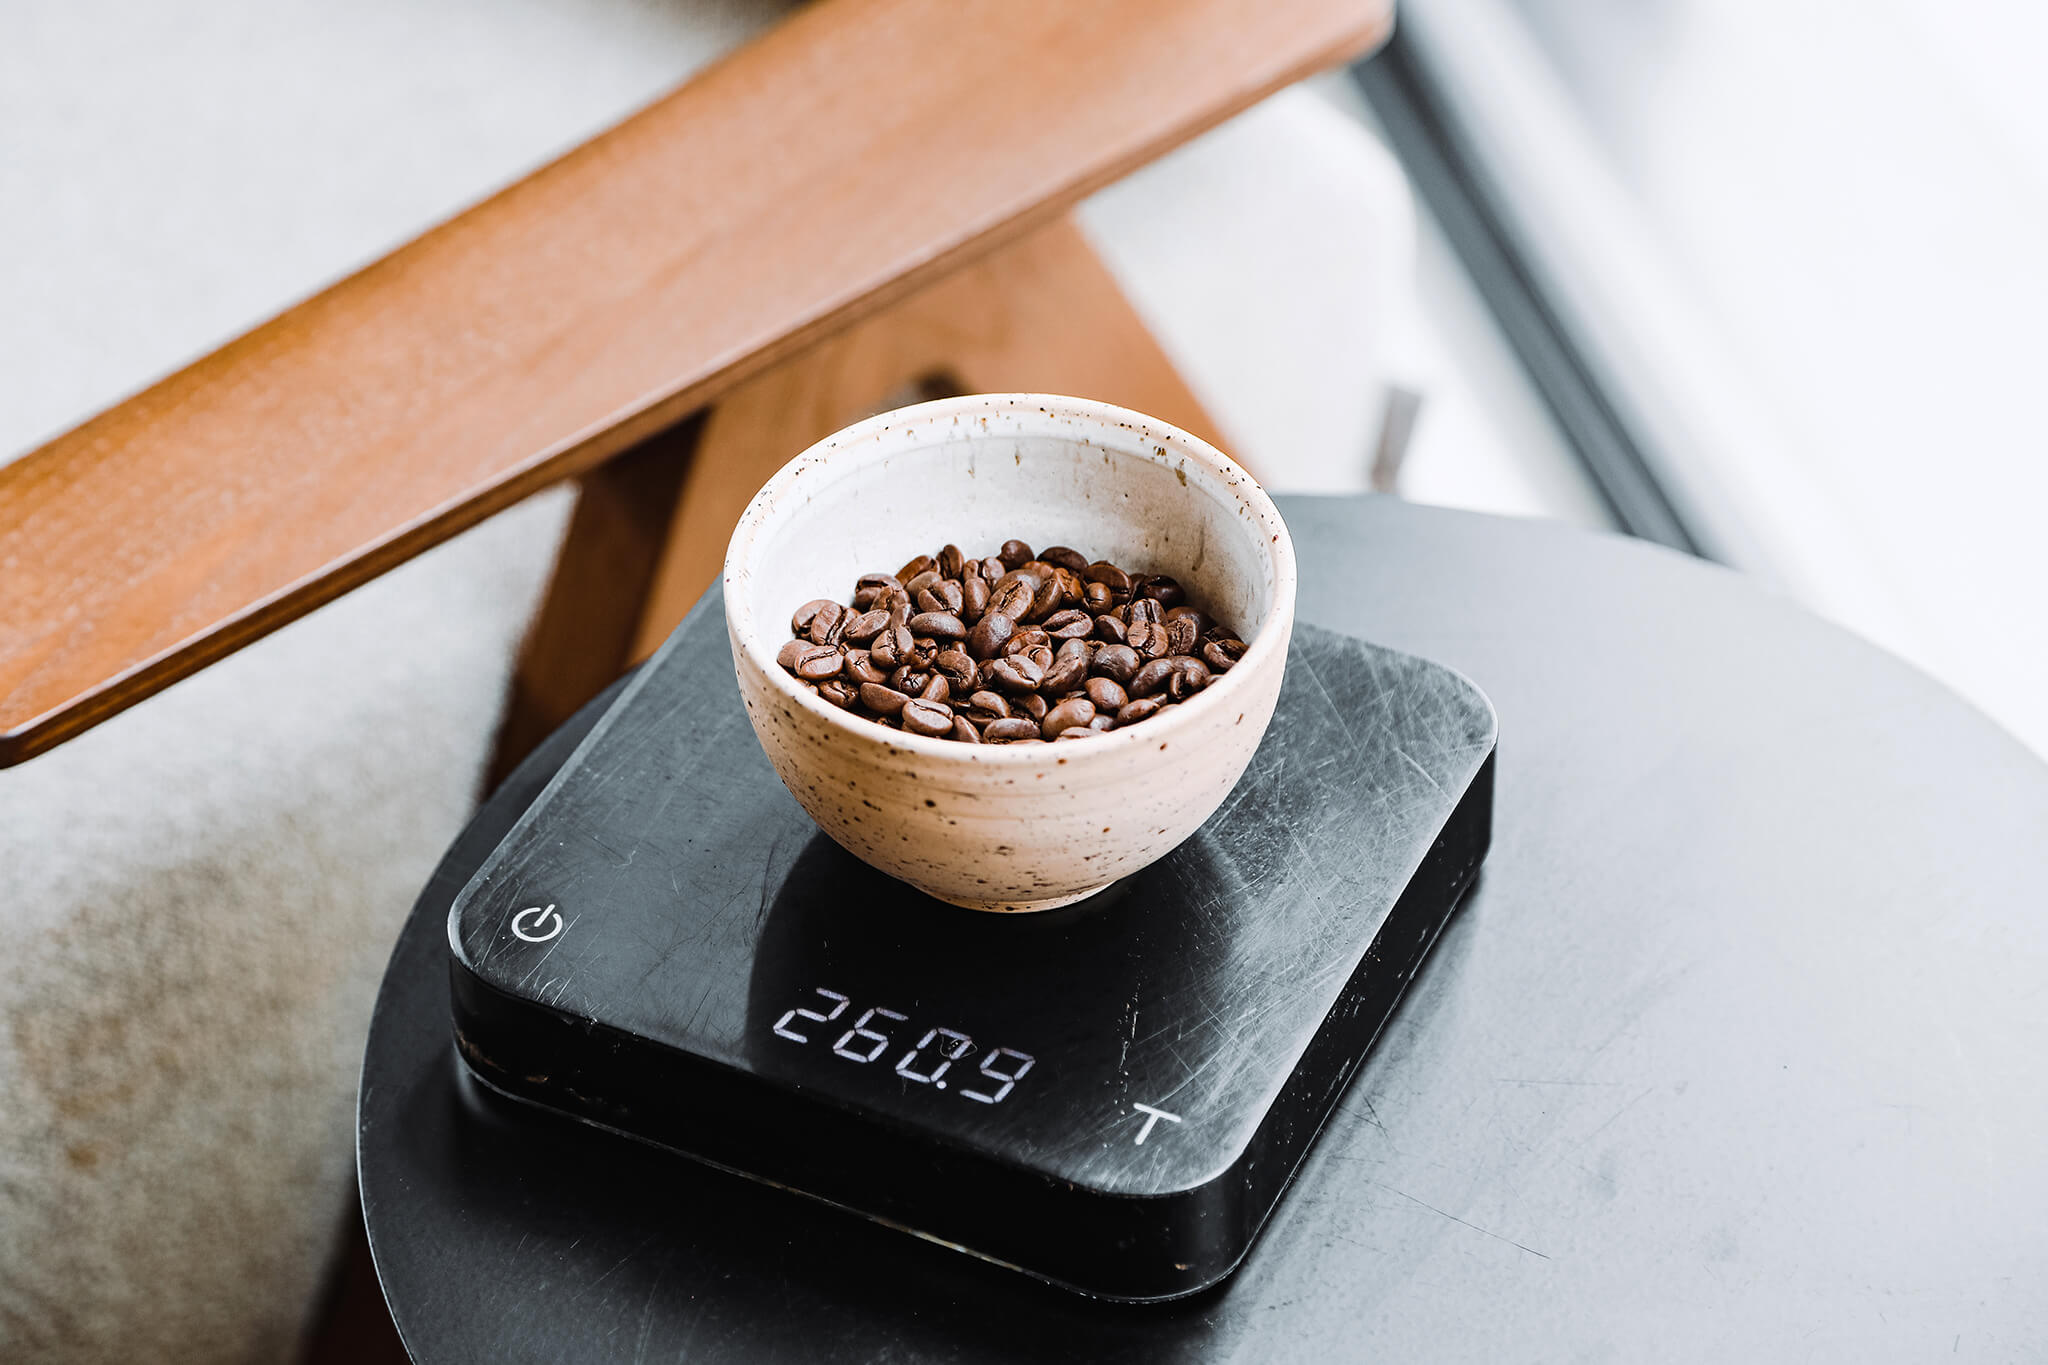 A set of coffee scales being used